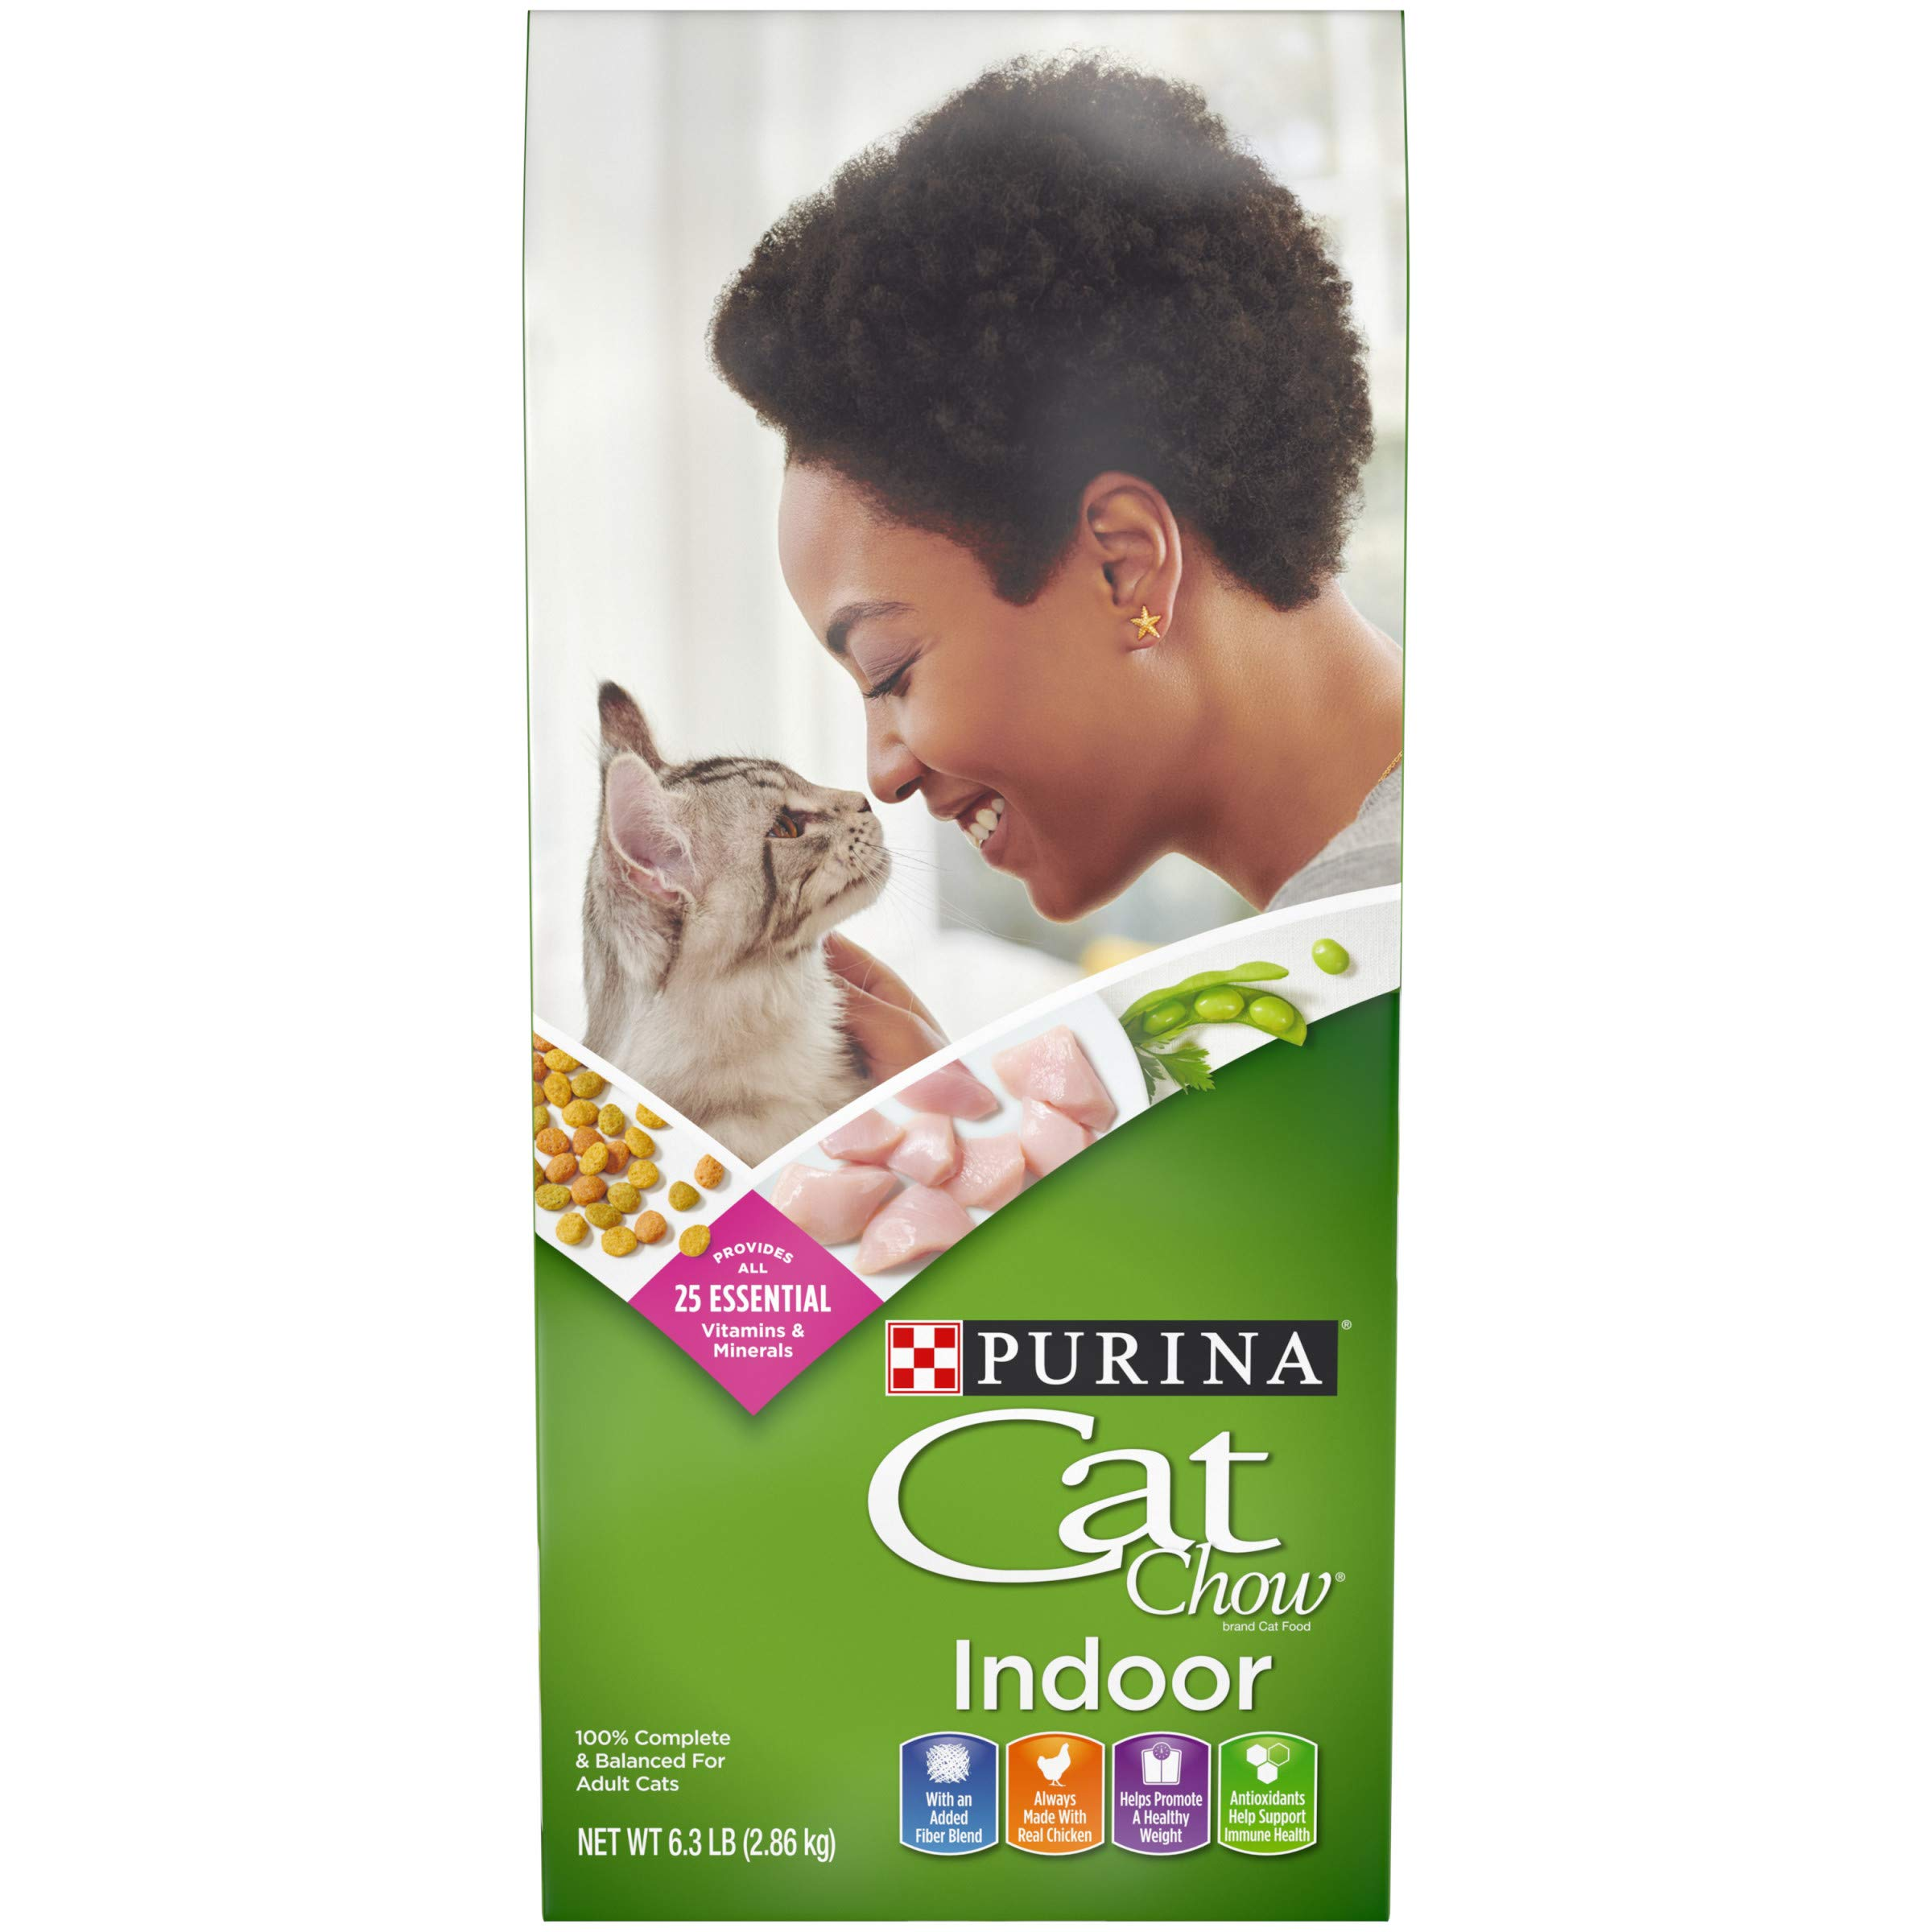 Purina Cat Chow Hairball, Healthy Weight, Indoor Dry Cat Food, Indoor - 6.3 lb. Bag by Purina Cat Chow